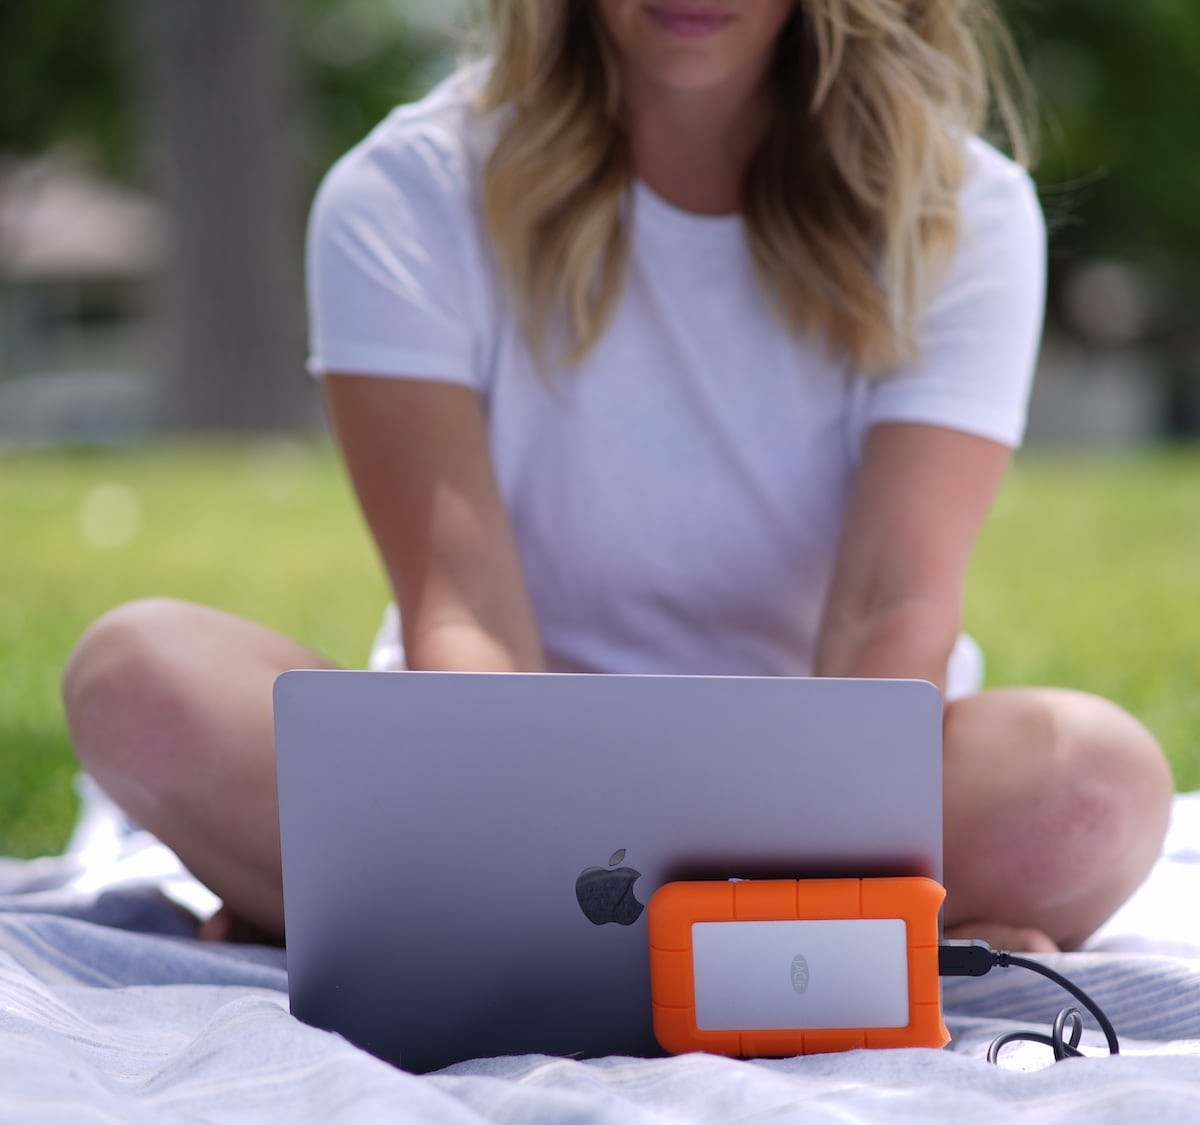 This laptop attachment securely holds hard drives and hubs